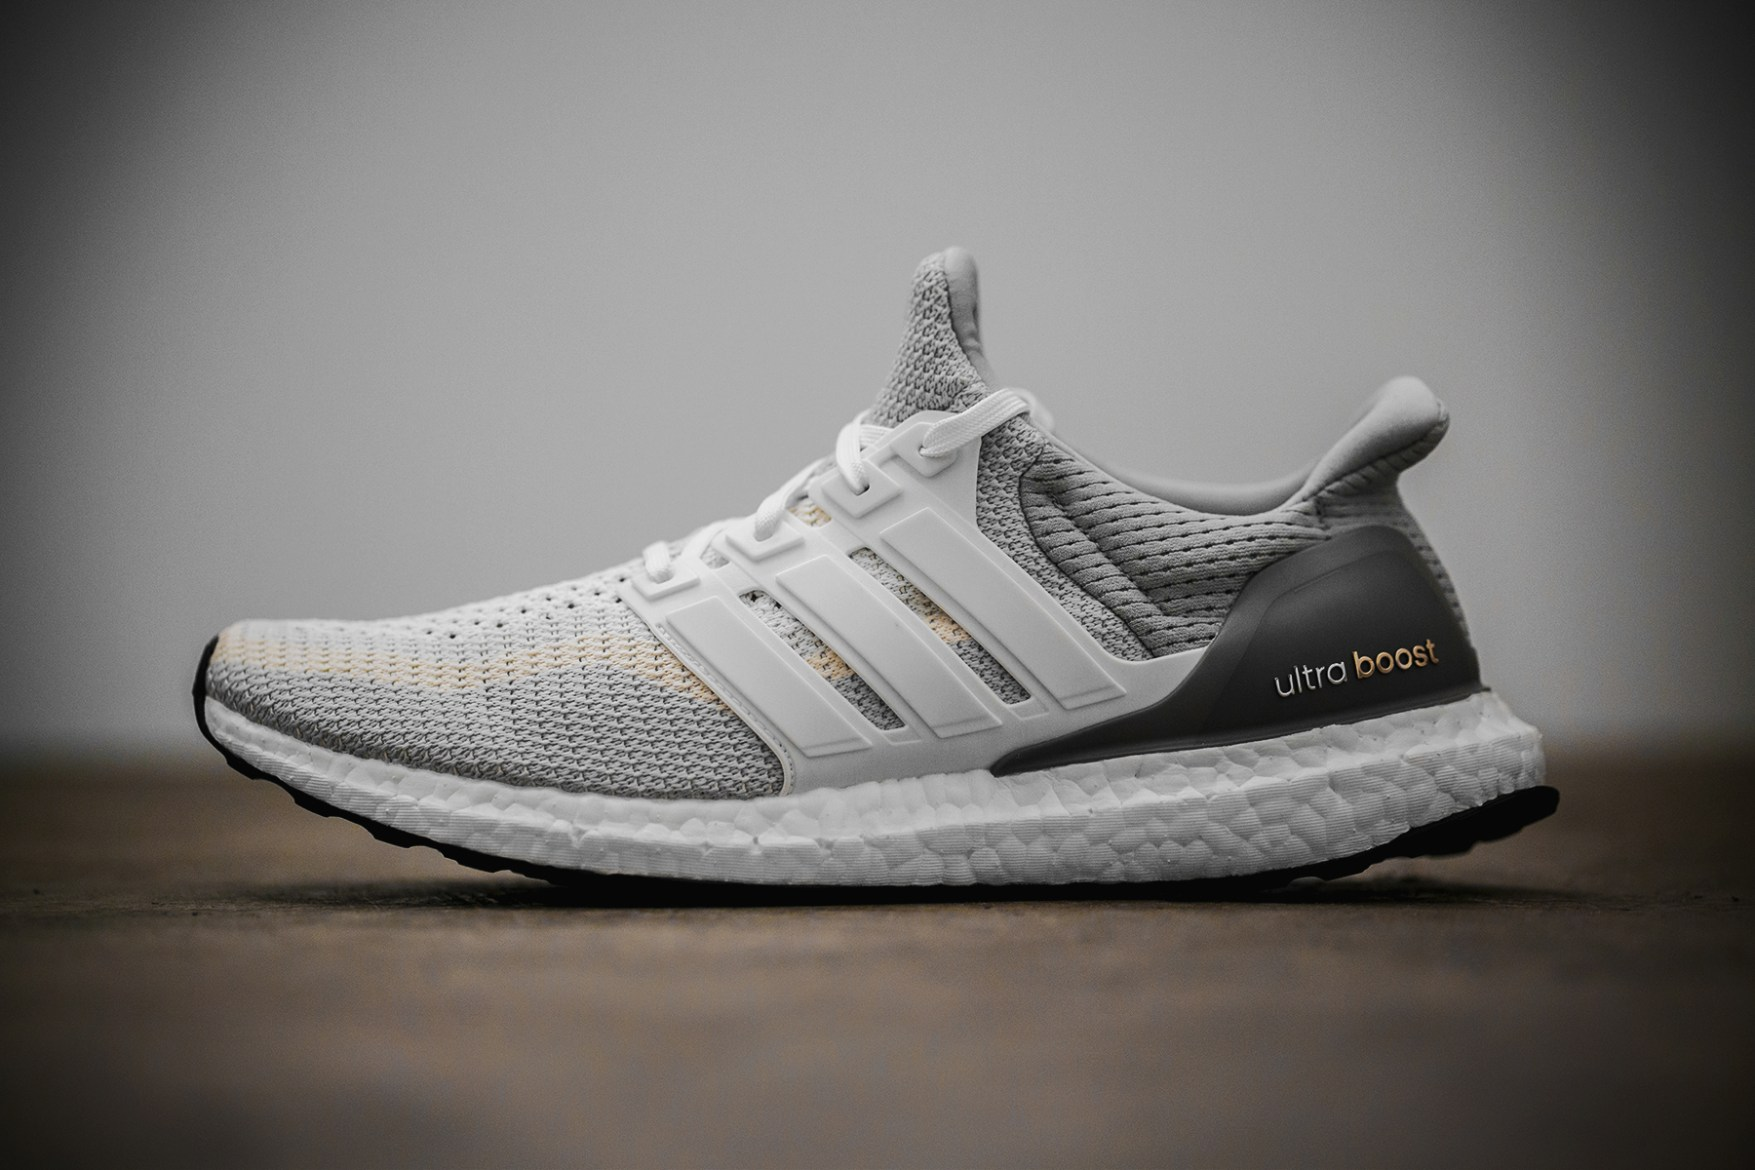 9519f73420527 closeout adidas ultra boost grey and maroon 346f3 1a6c5